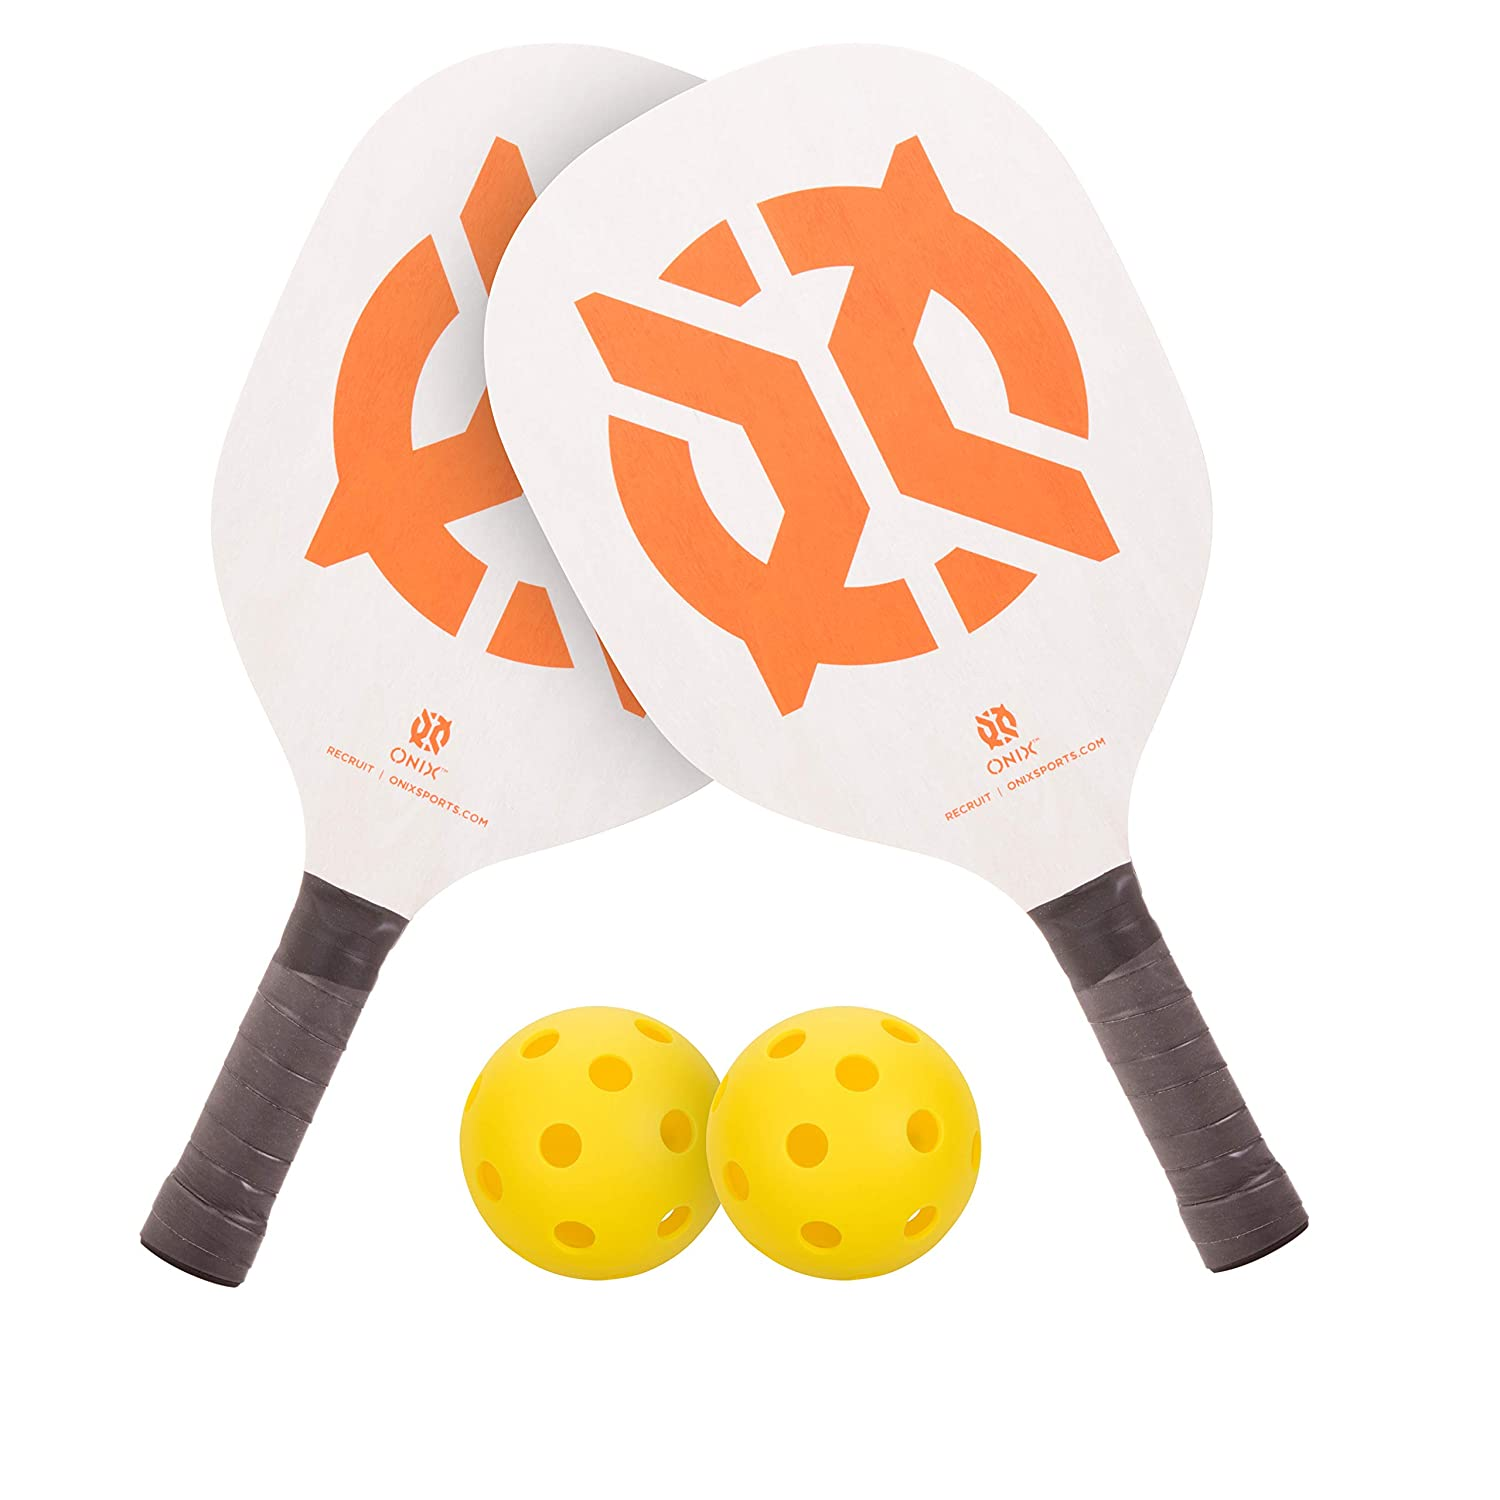 Onix Recruit Pickleball Starter Set Includes 2 Paddles and 2 Pickleballs for All Ages and Skill Levels to Learn to Play